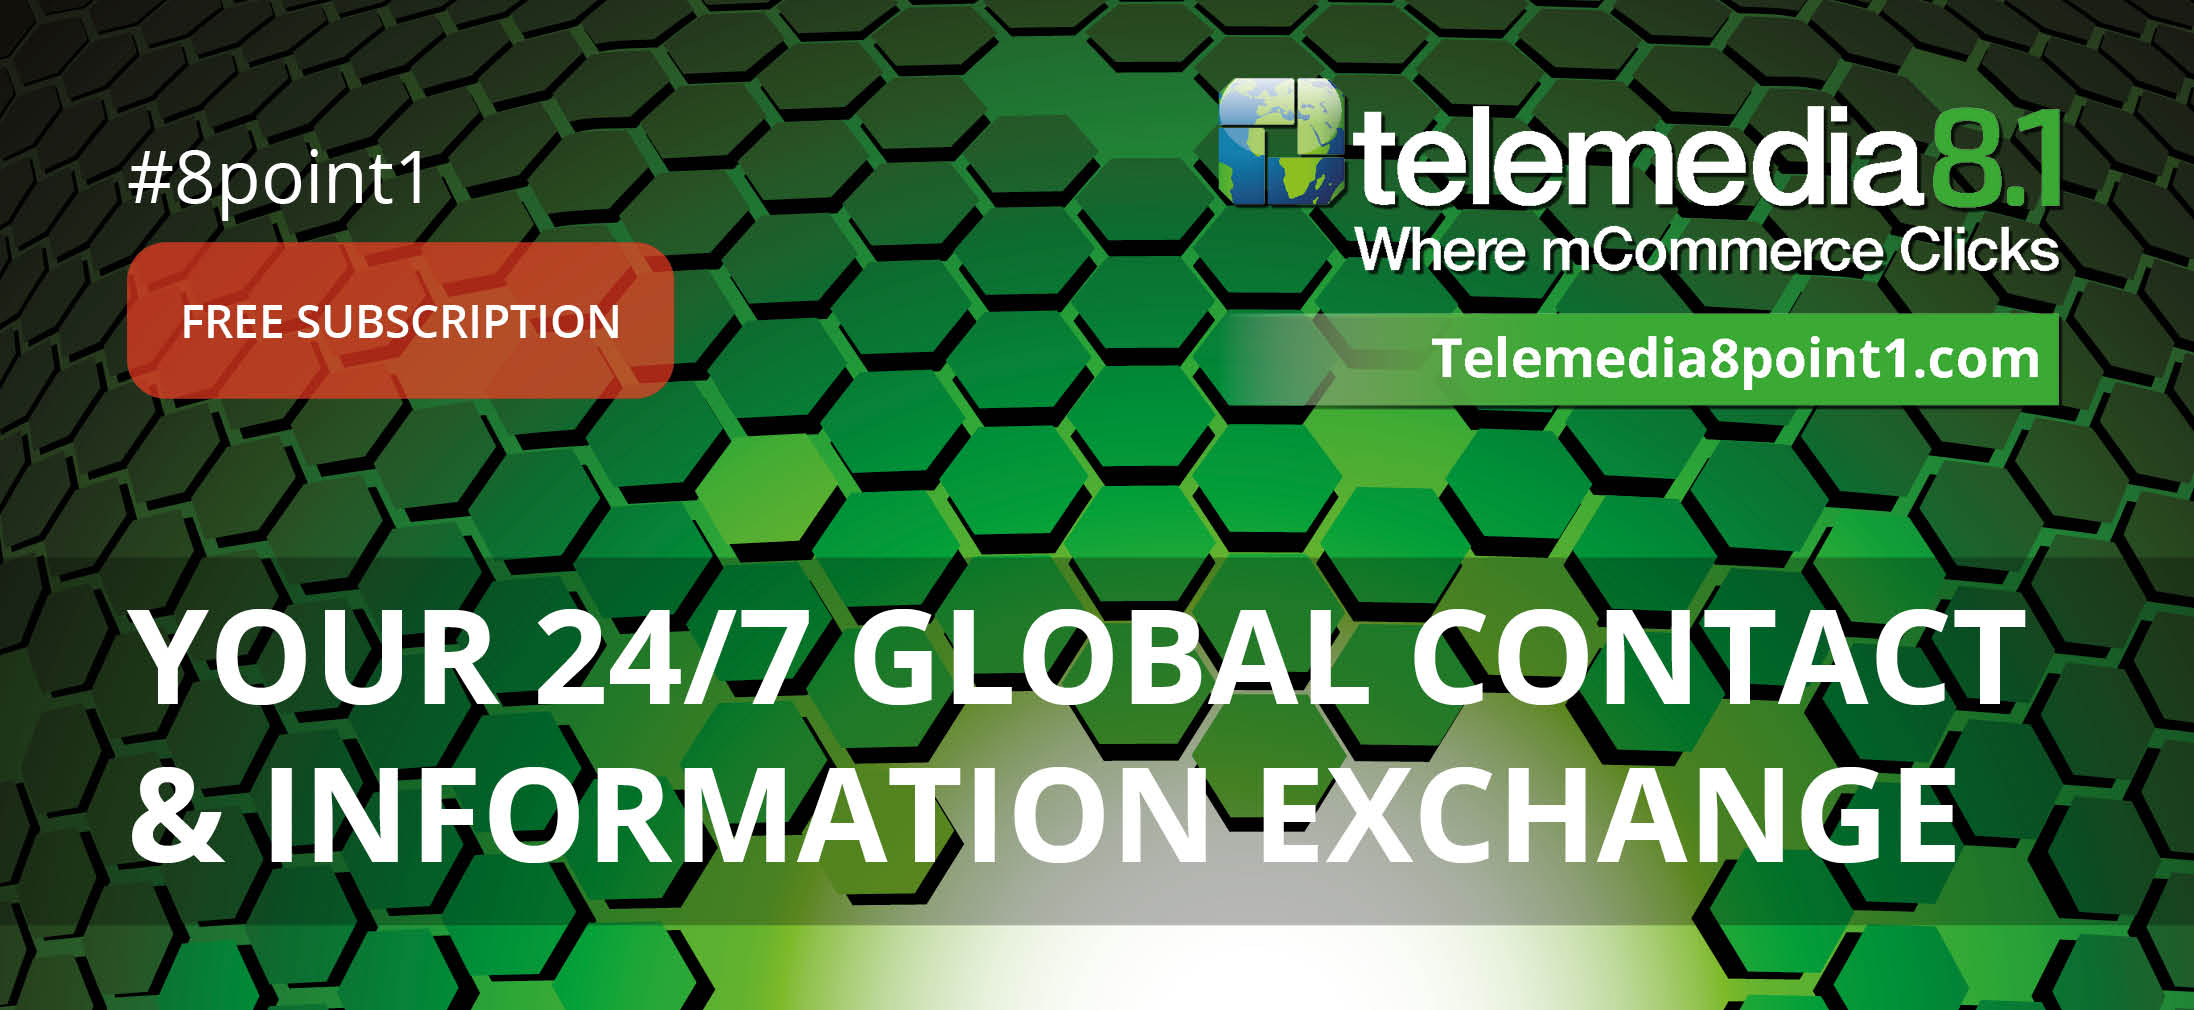 Telemedia8.1 Free Subscription Banner